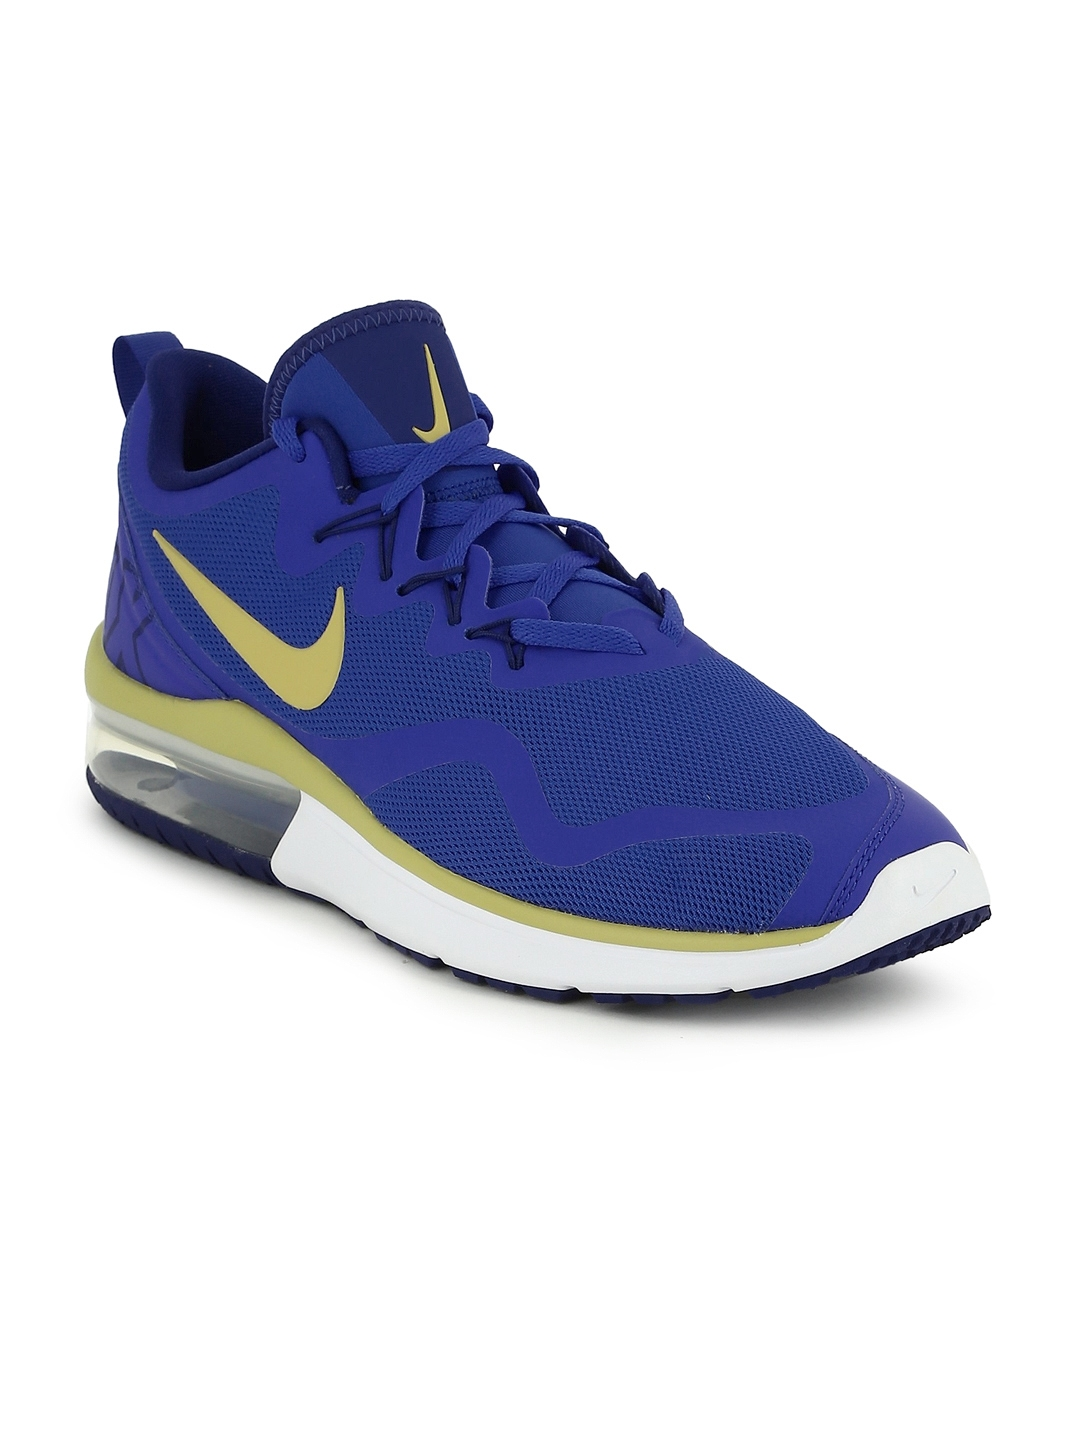 72014a19d725 Buy Nike Men Blue Air Max Fury Running Shoes - Sports Shoes for Men ...